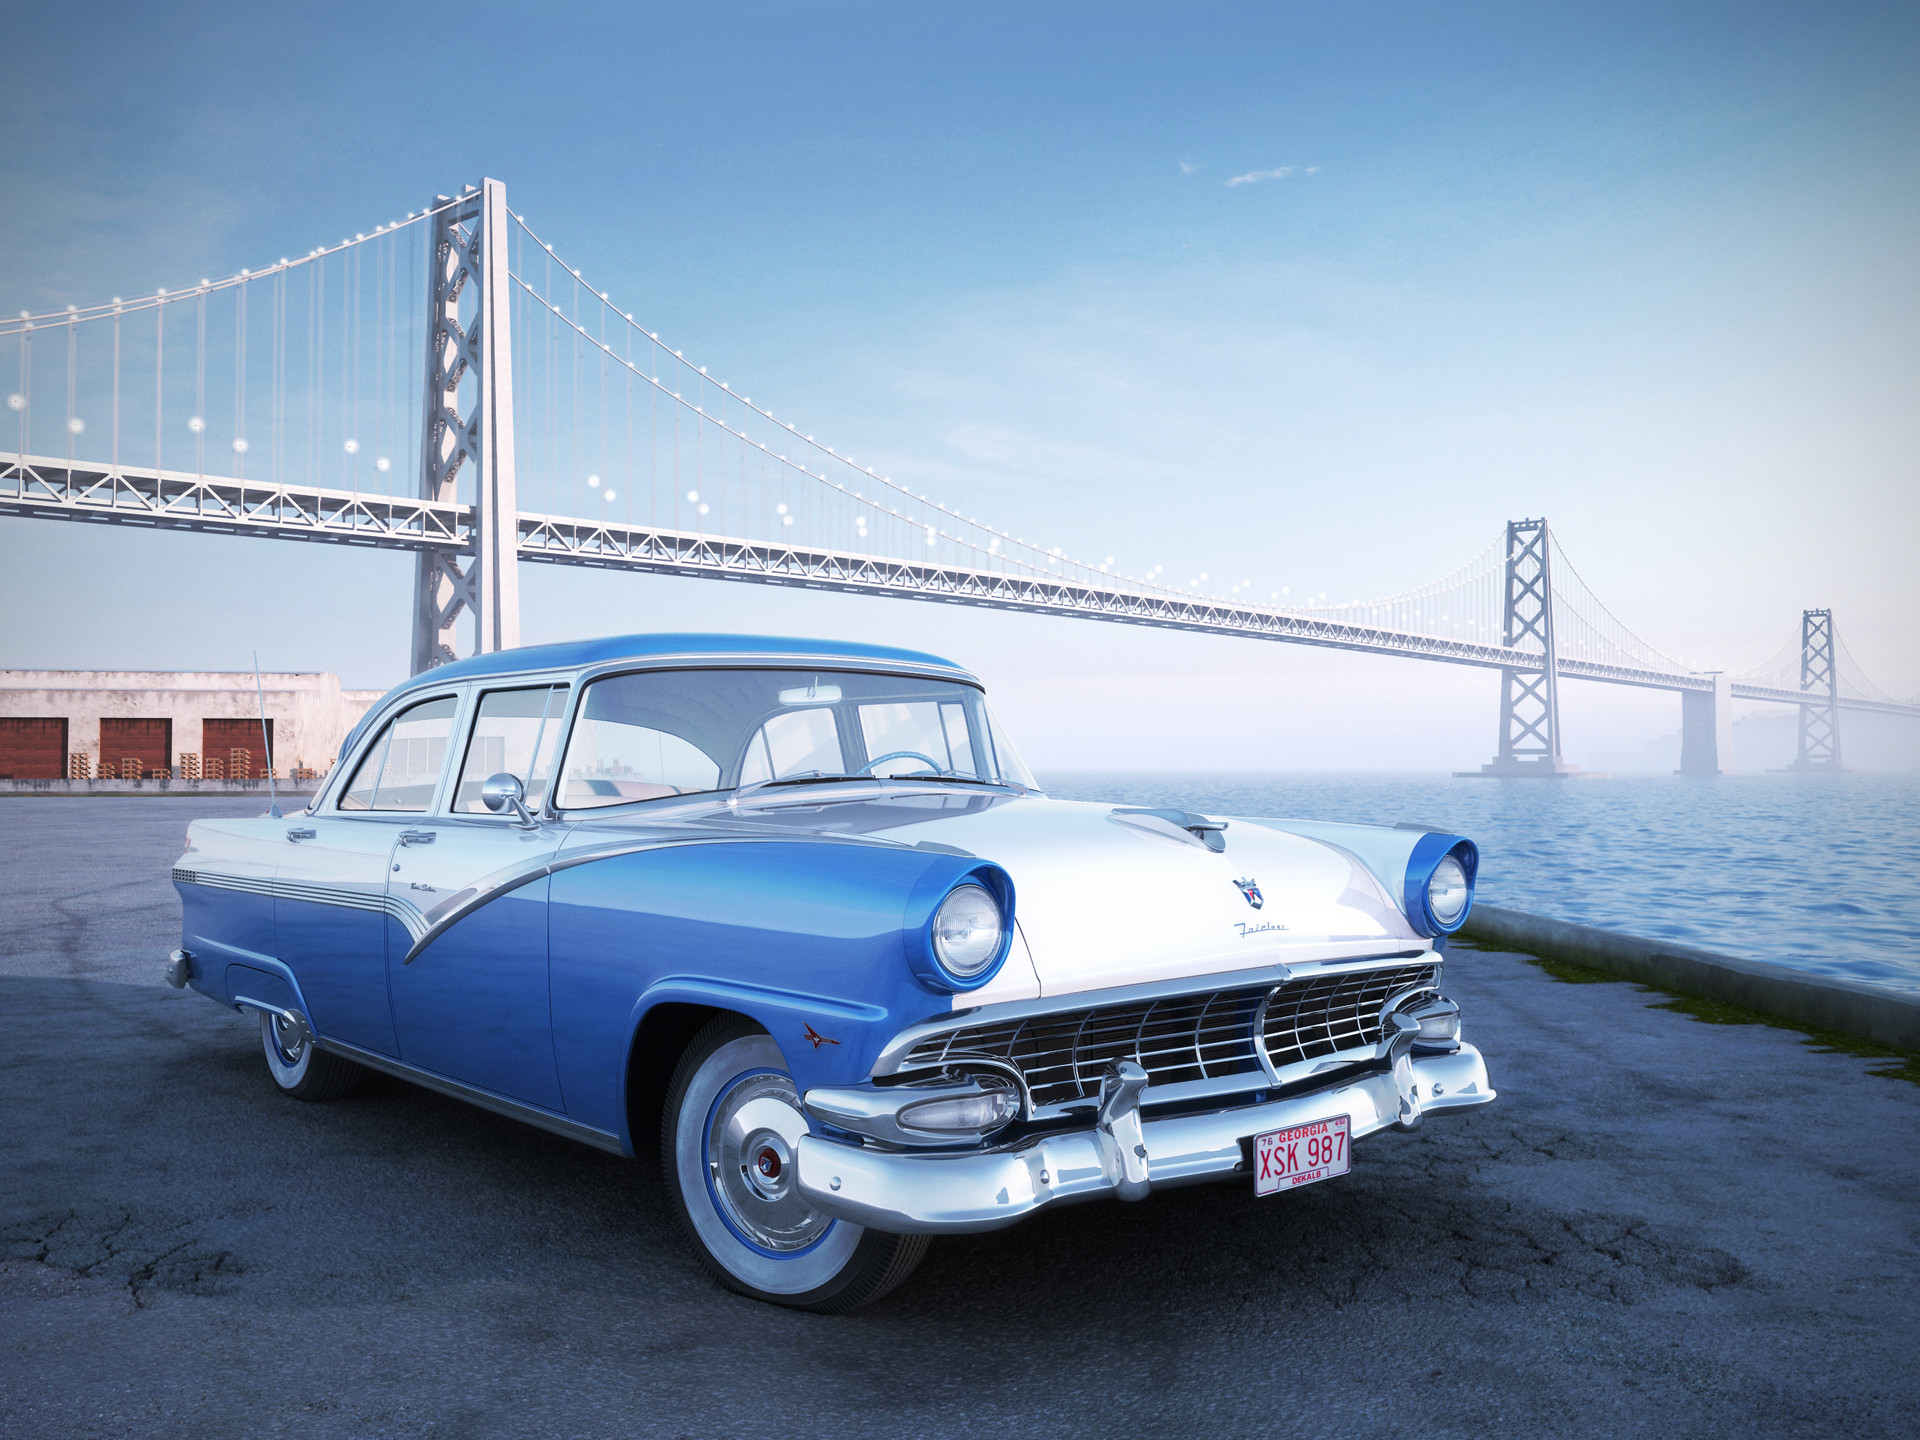 Nail khusnutdinov ford fairlane 56 bridge